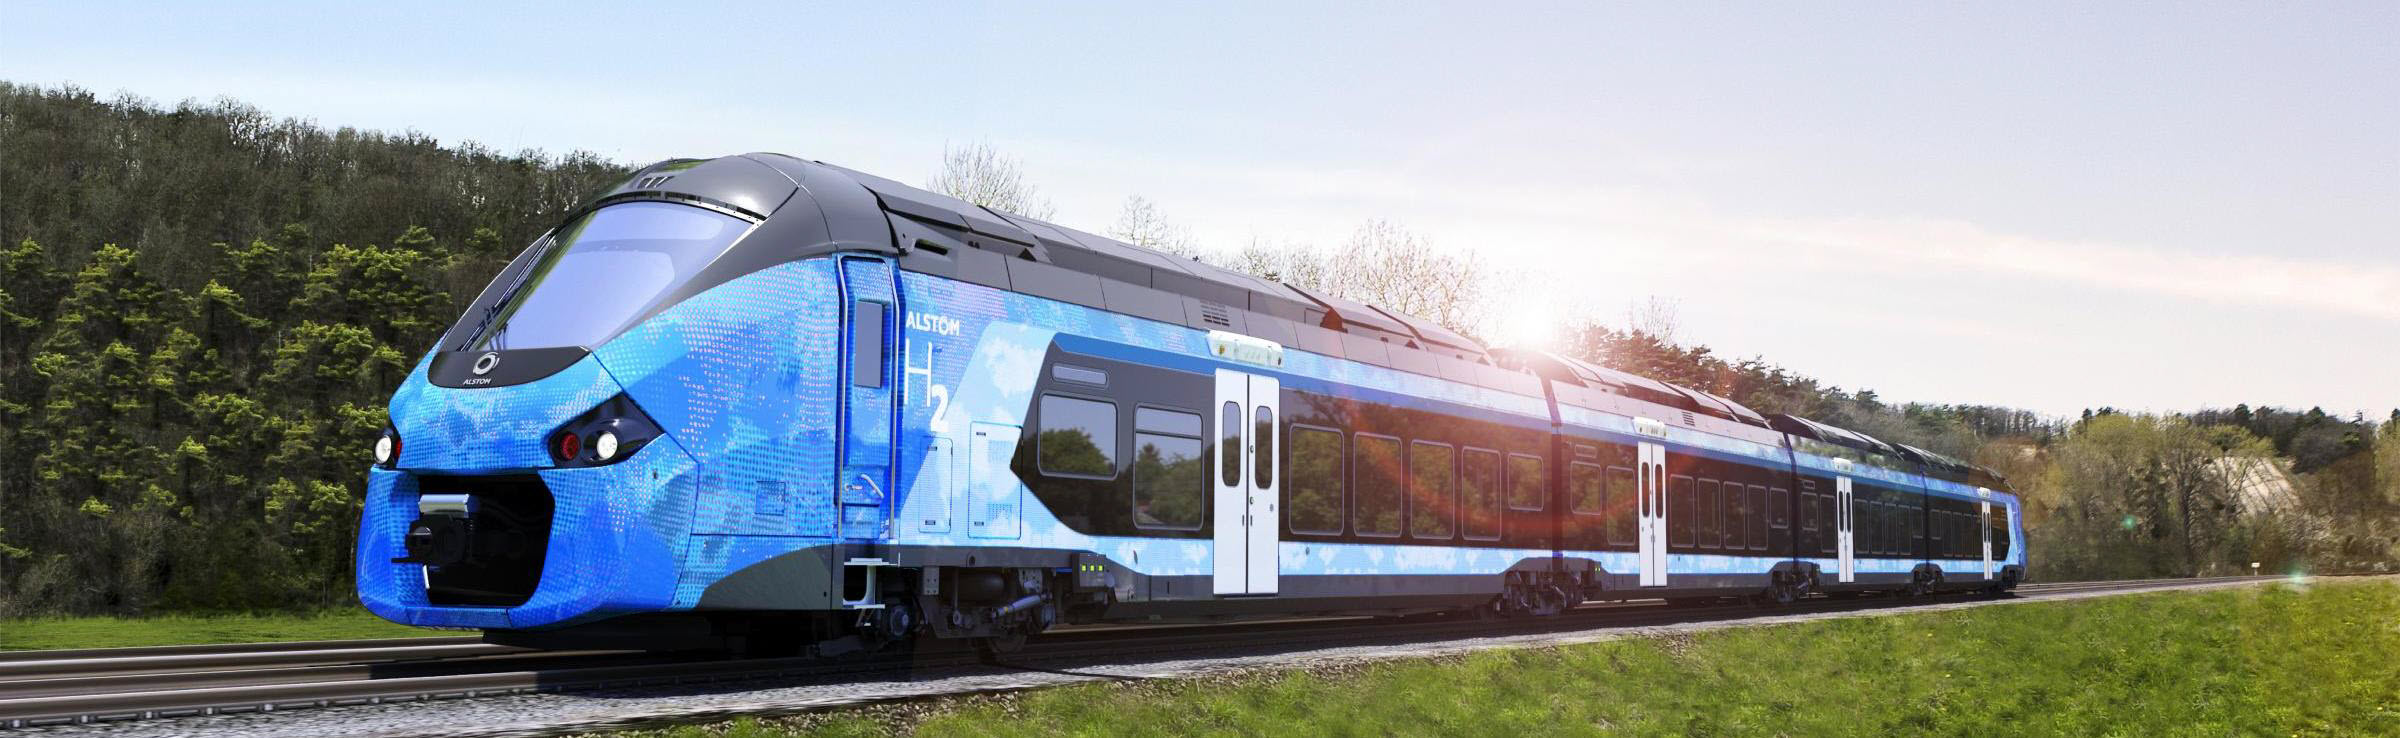 Fuel cells works, Thursday Throwback Story: France Climbs Aboard Hydrogen Train Revolution with Order of 15 Trains